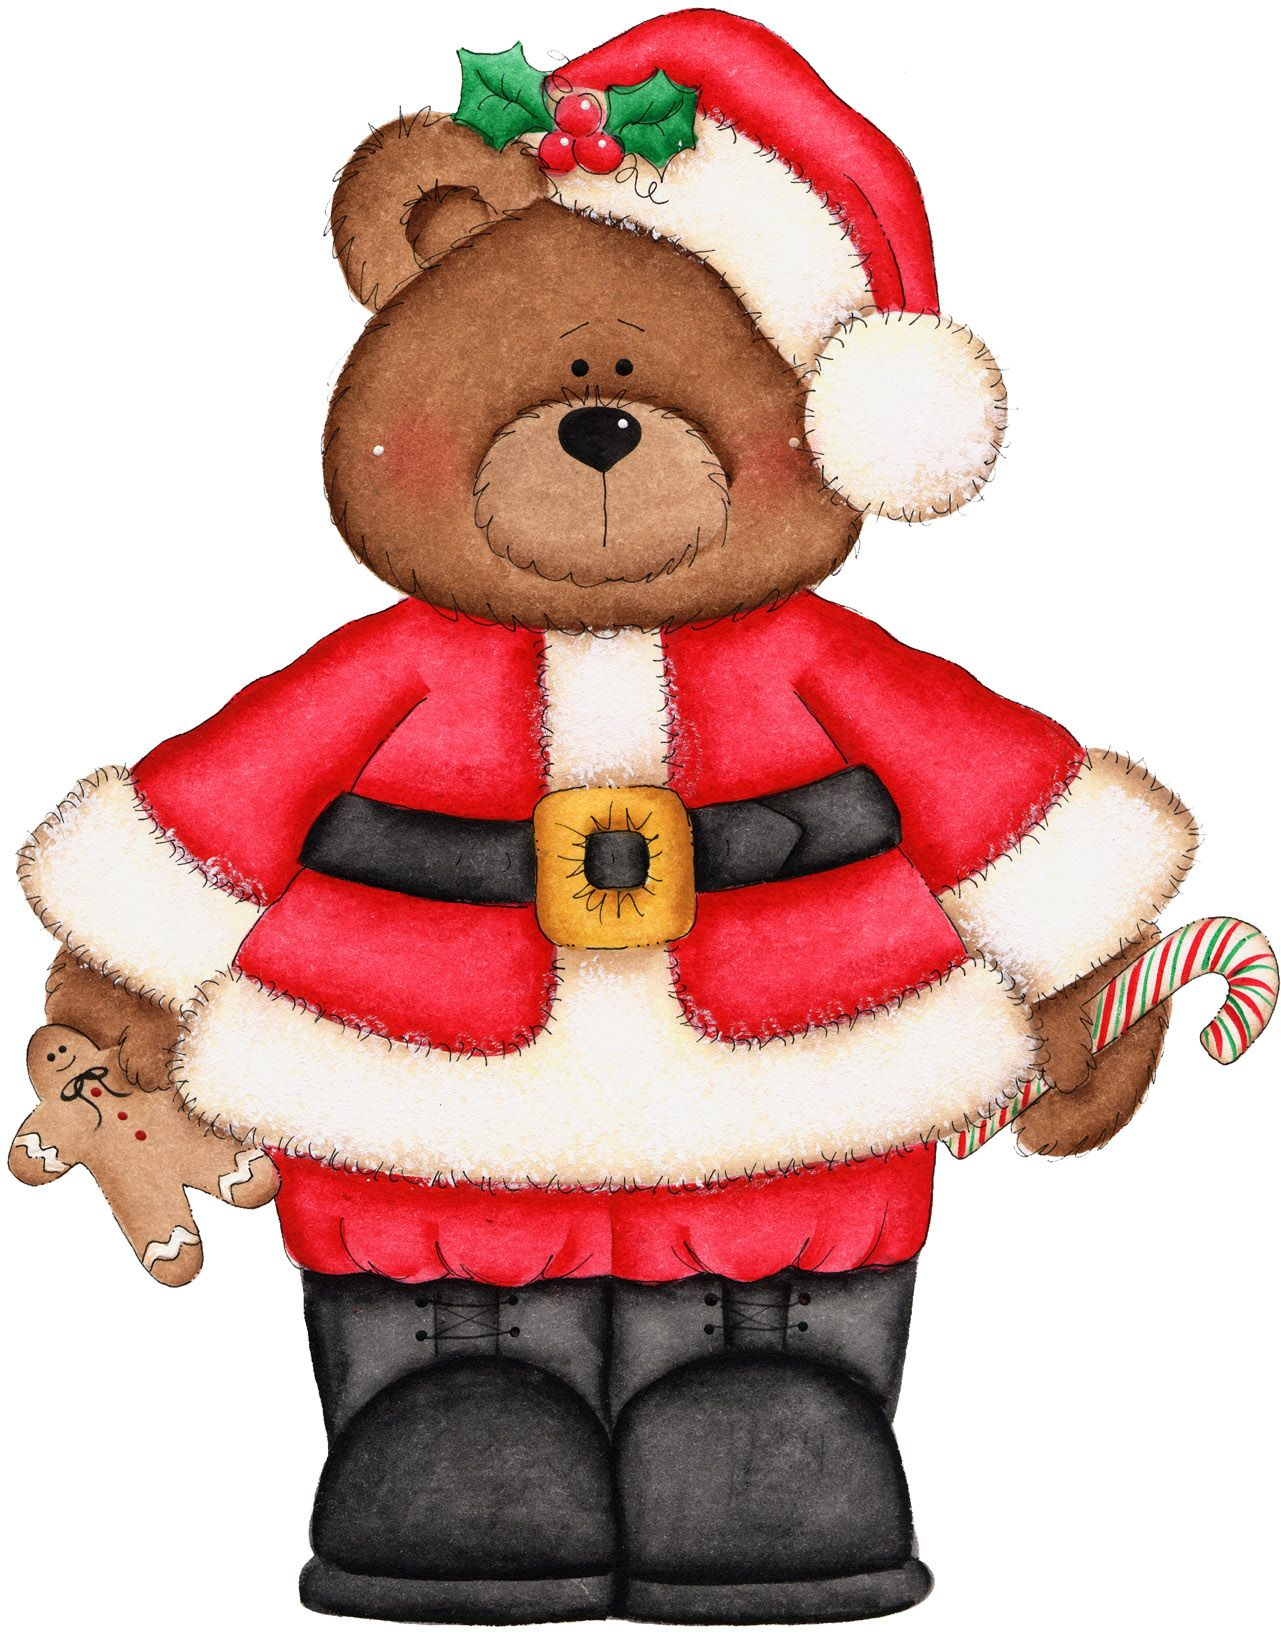 Hug clipart christmas. Images for clip art